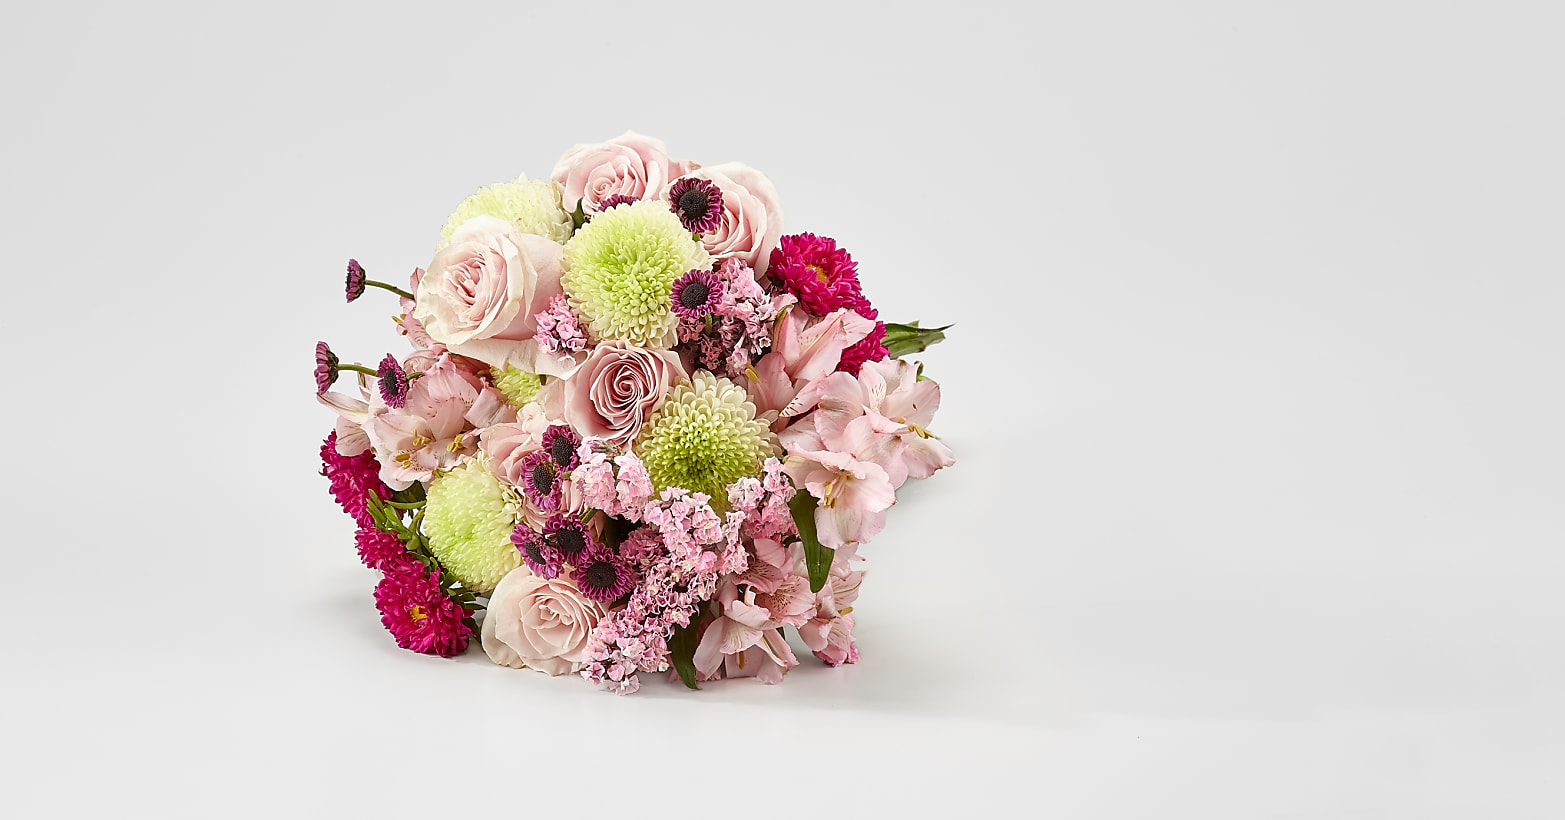 Sweet Pea Bouquet - Image 1 Of 2